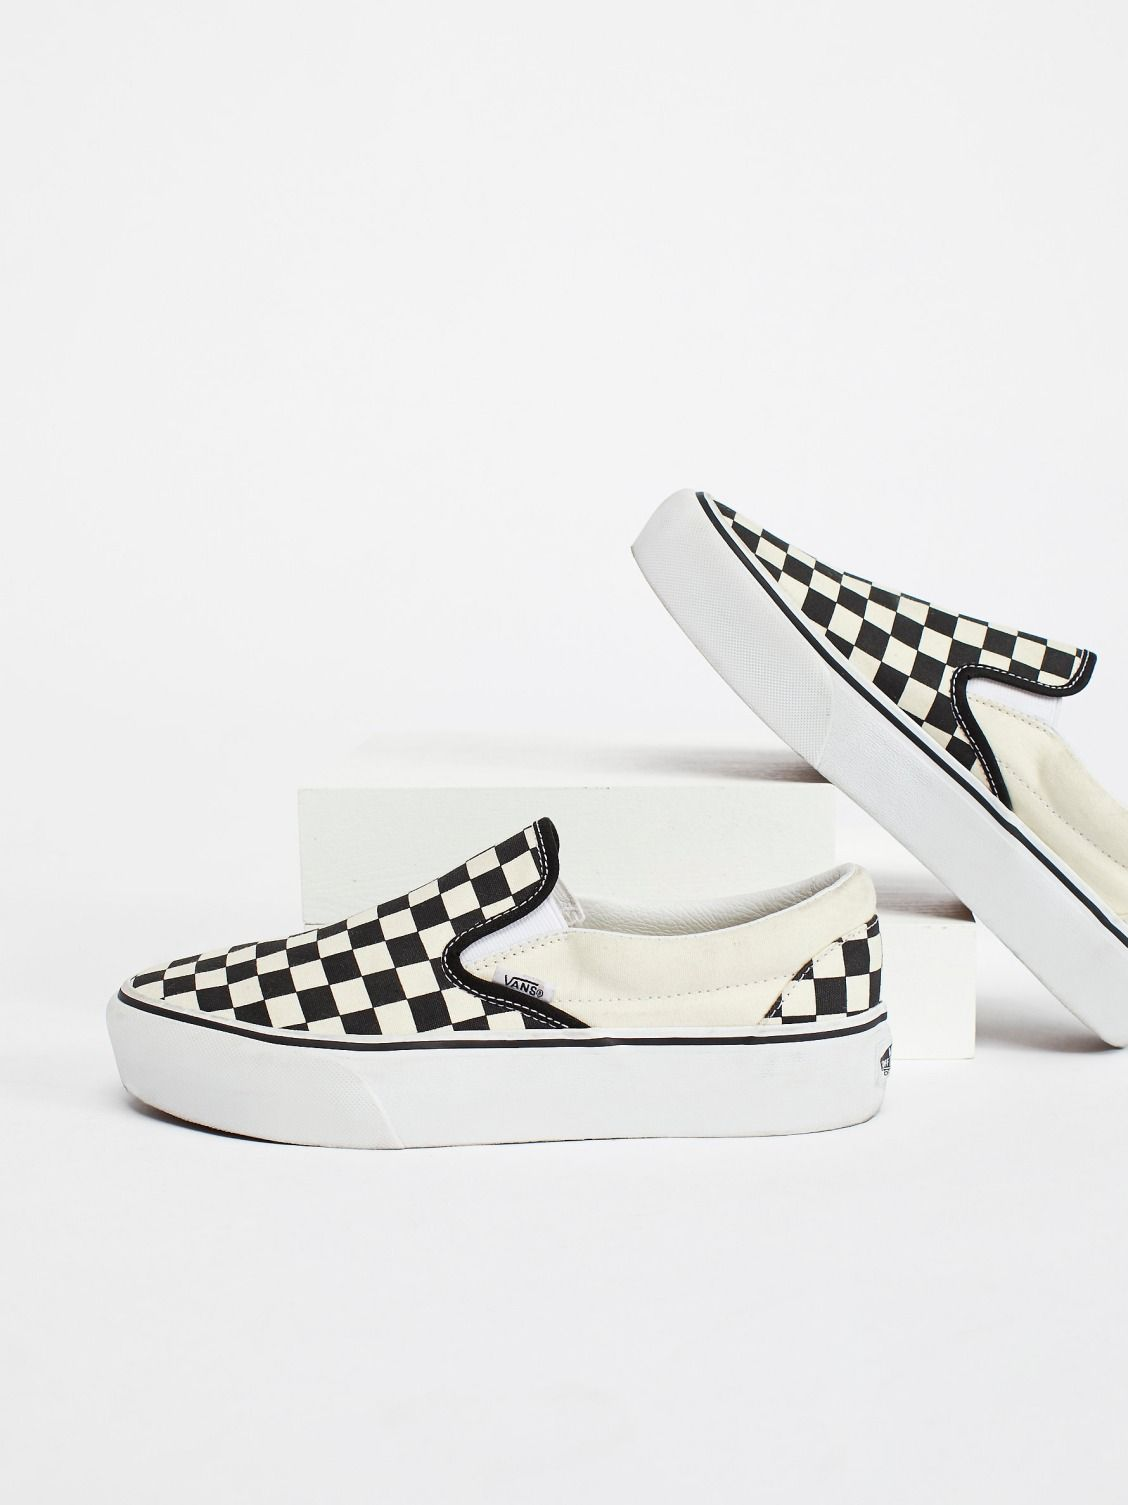 871d5a2ddd Vans Black   White Checker Classic Platform Slip-On Sneaker at Free People  Clothing Boutique